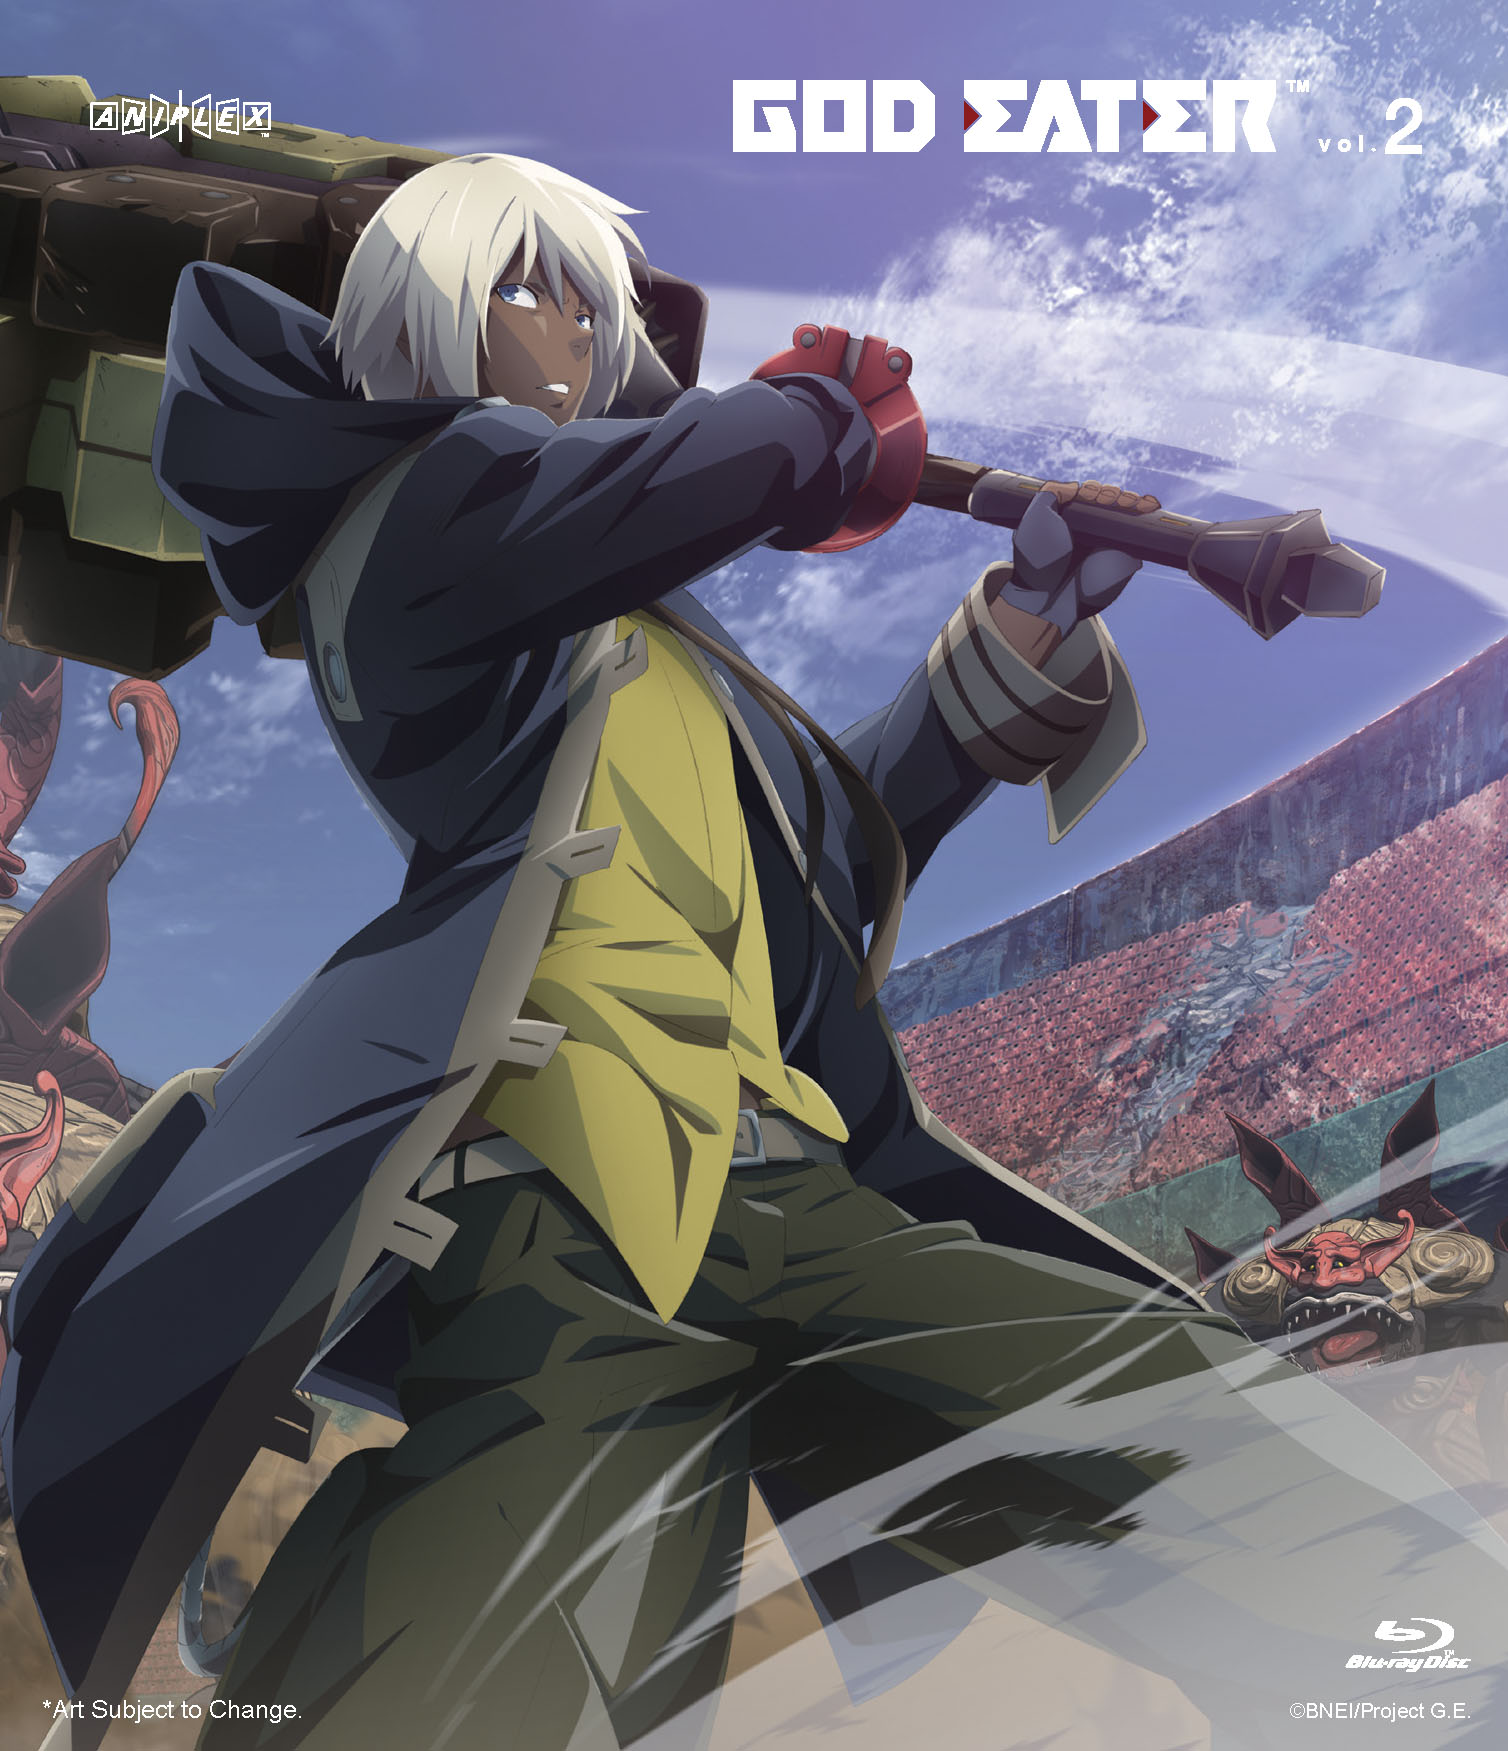 God Eater Volume 2 Blu-ray